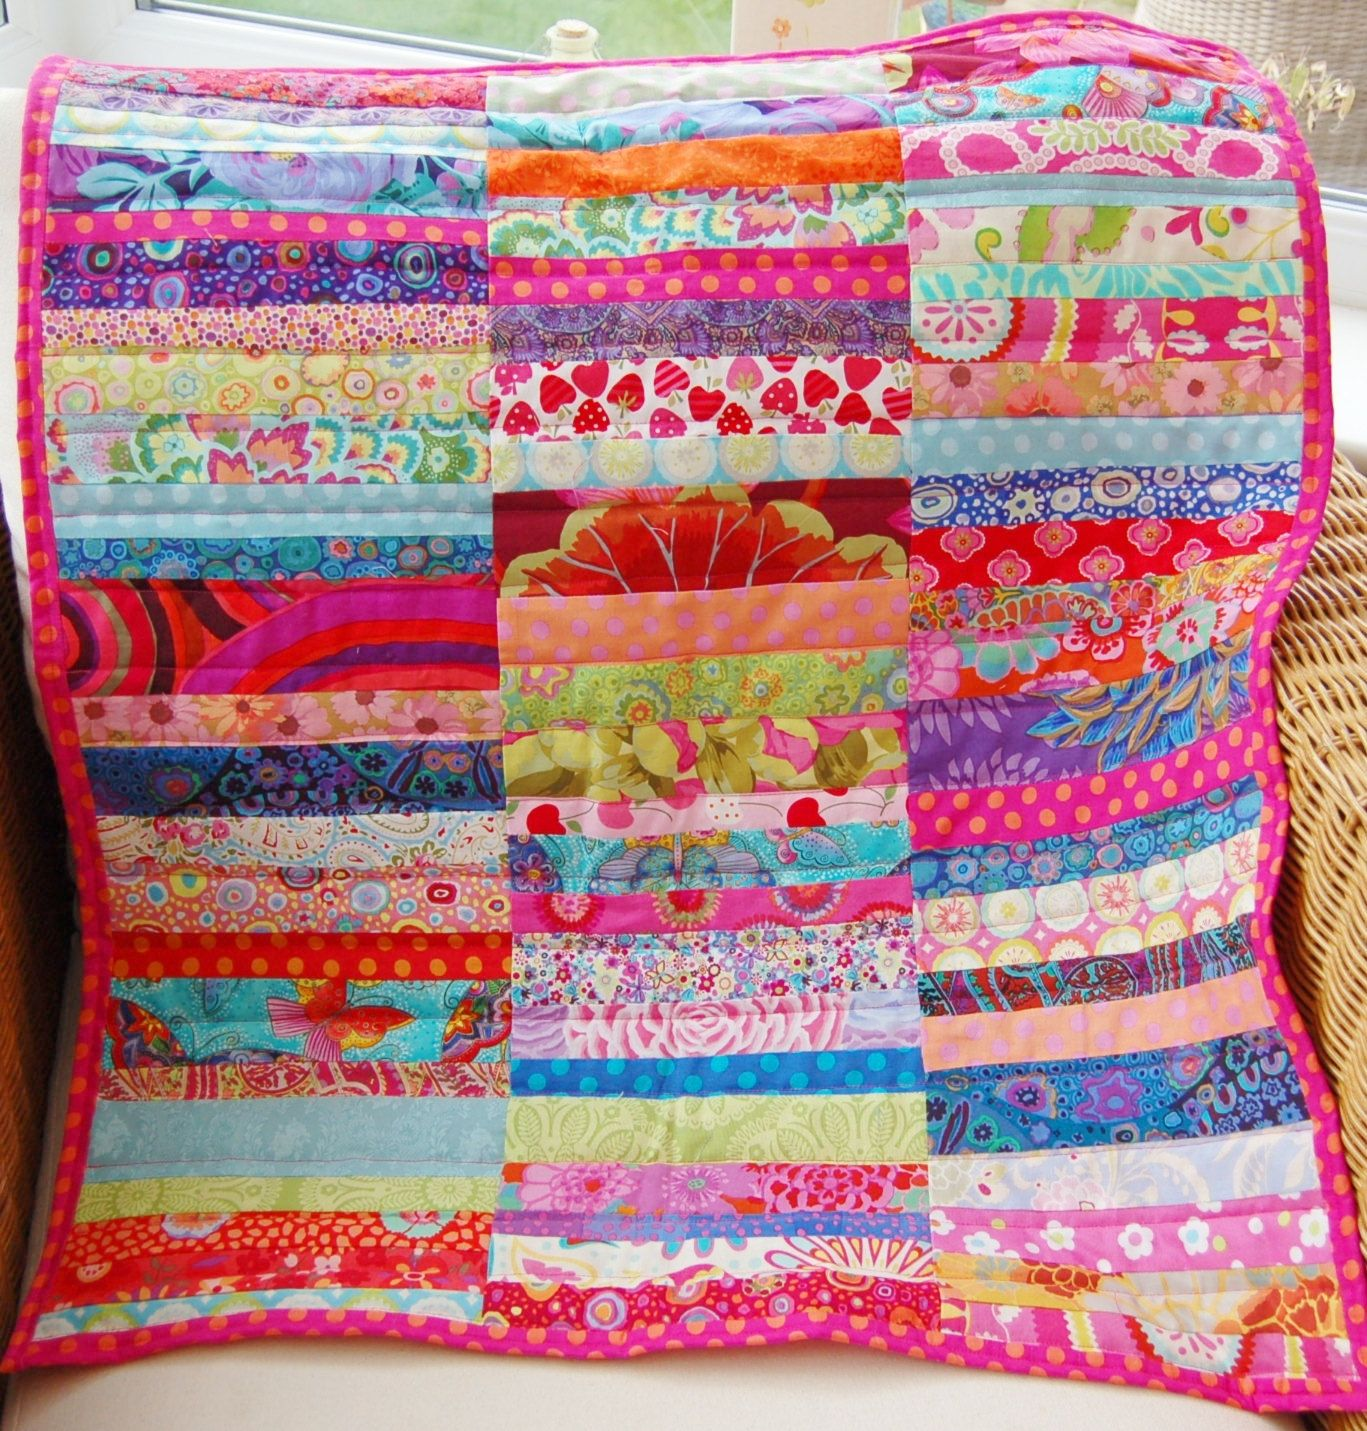 Handmade multi coloured patchwork pram quilt, baby blanket for ... : colourful patchwork quilt - Adamdwight.com